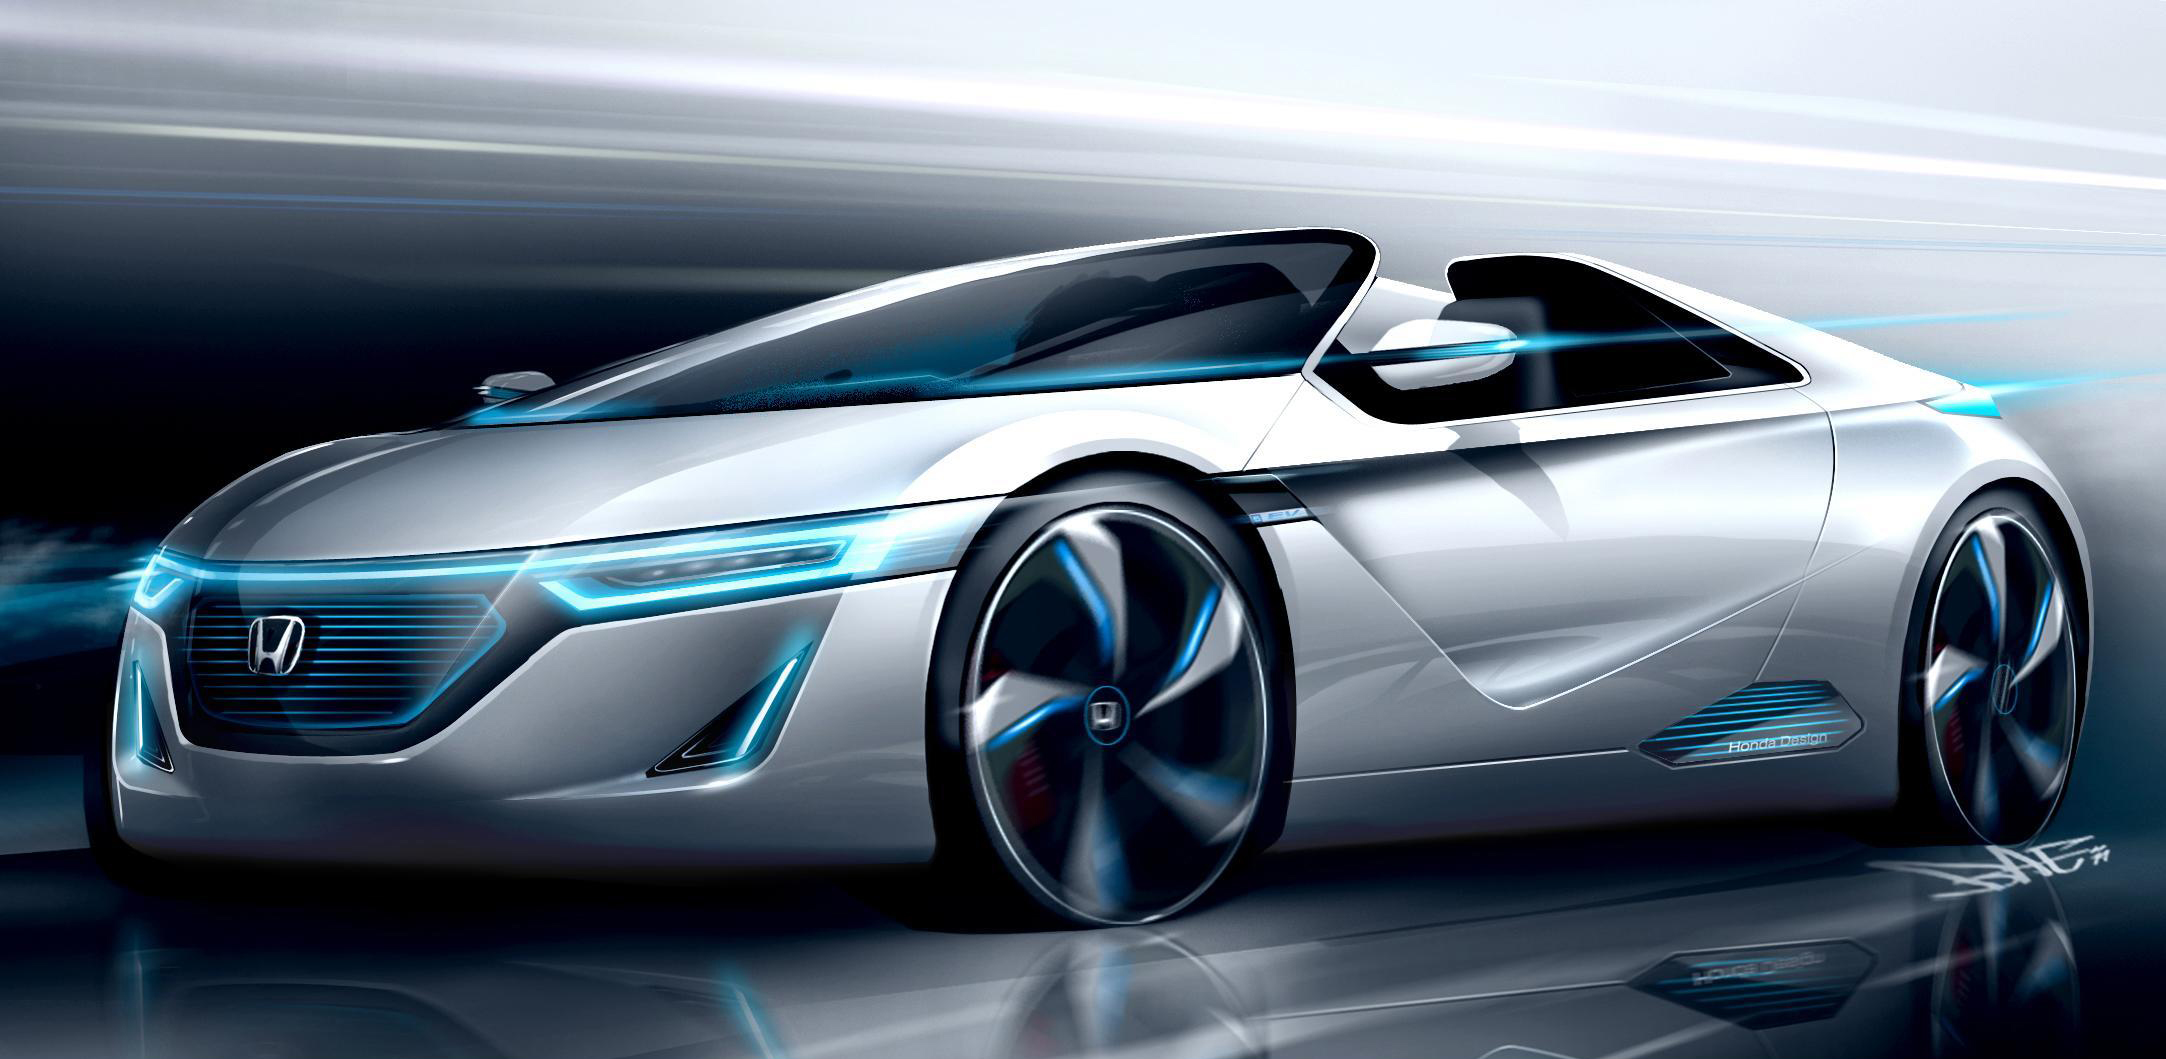 2012 honda ev ster concept pictures news research pricing. Black Bedroom Furniture Sets. Home Design Ideas